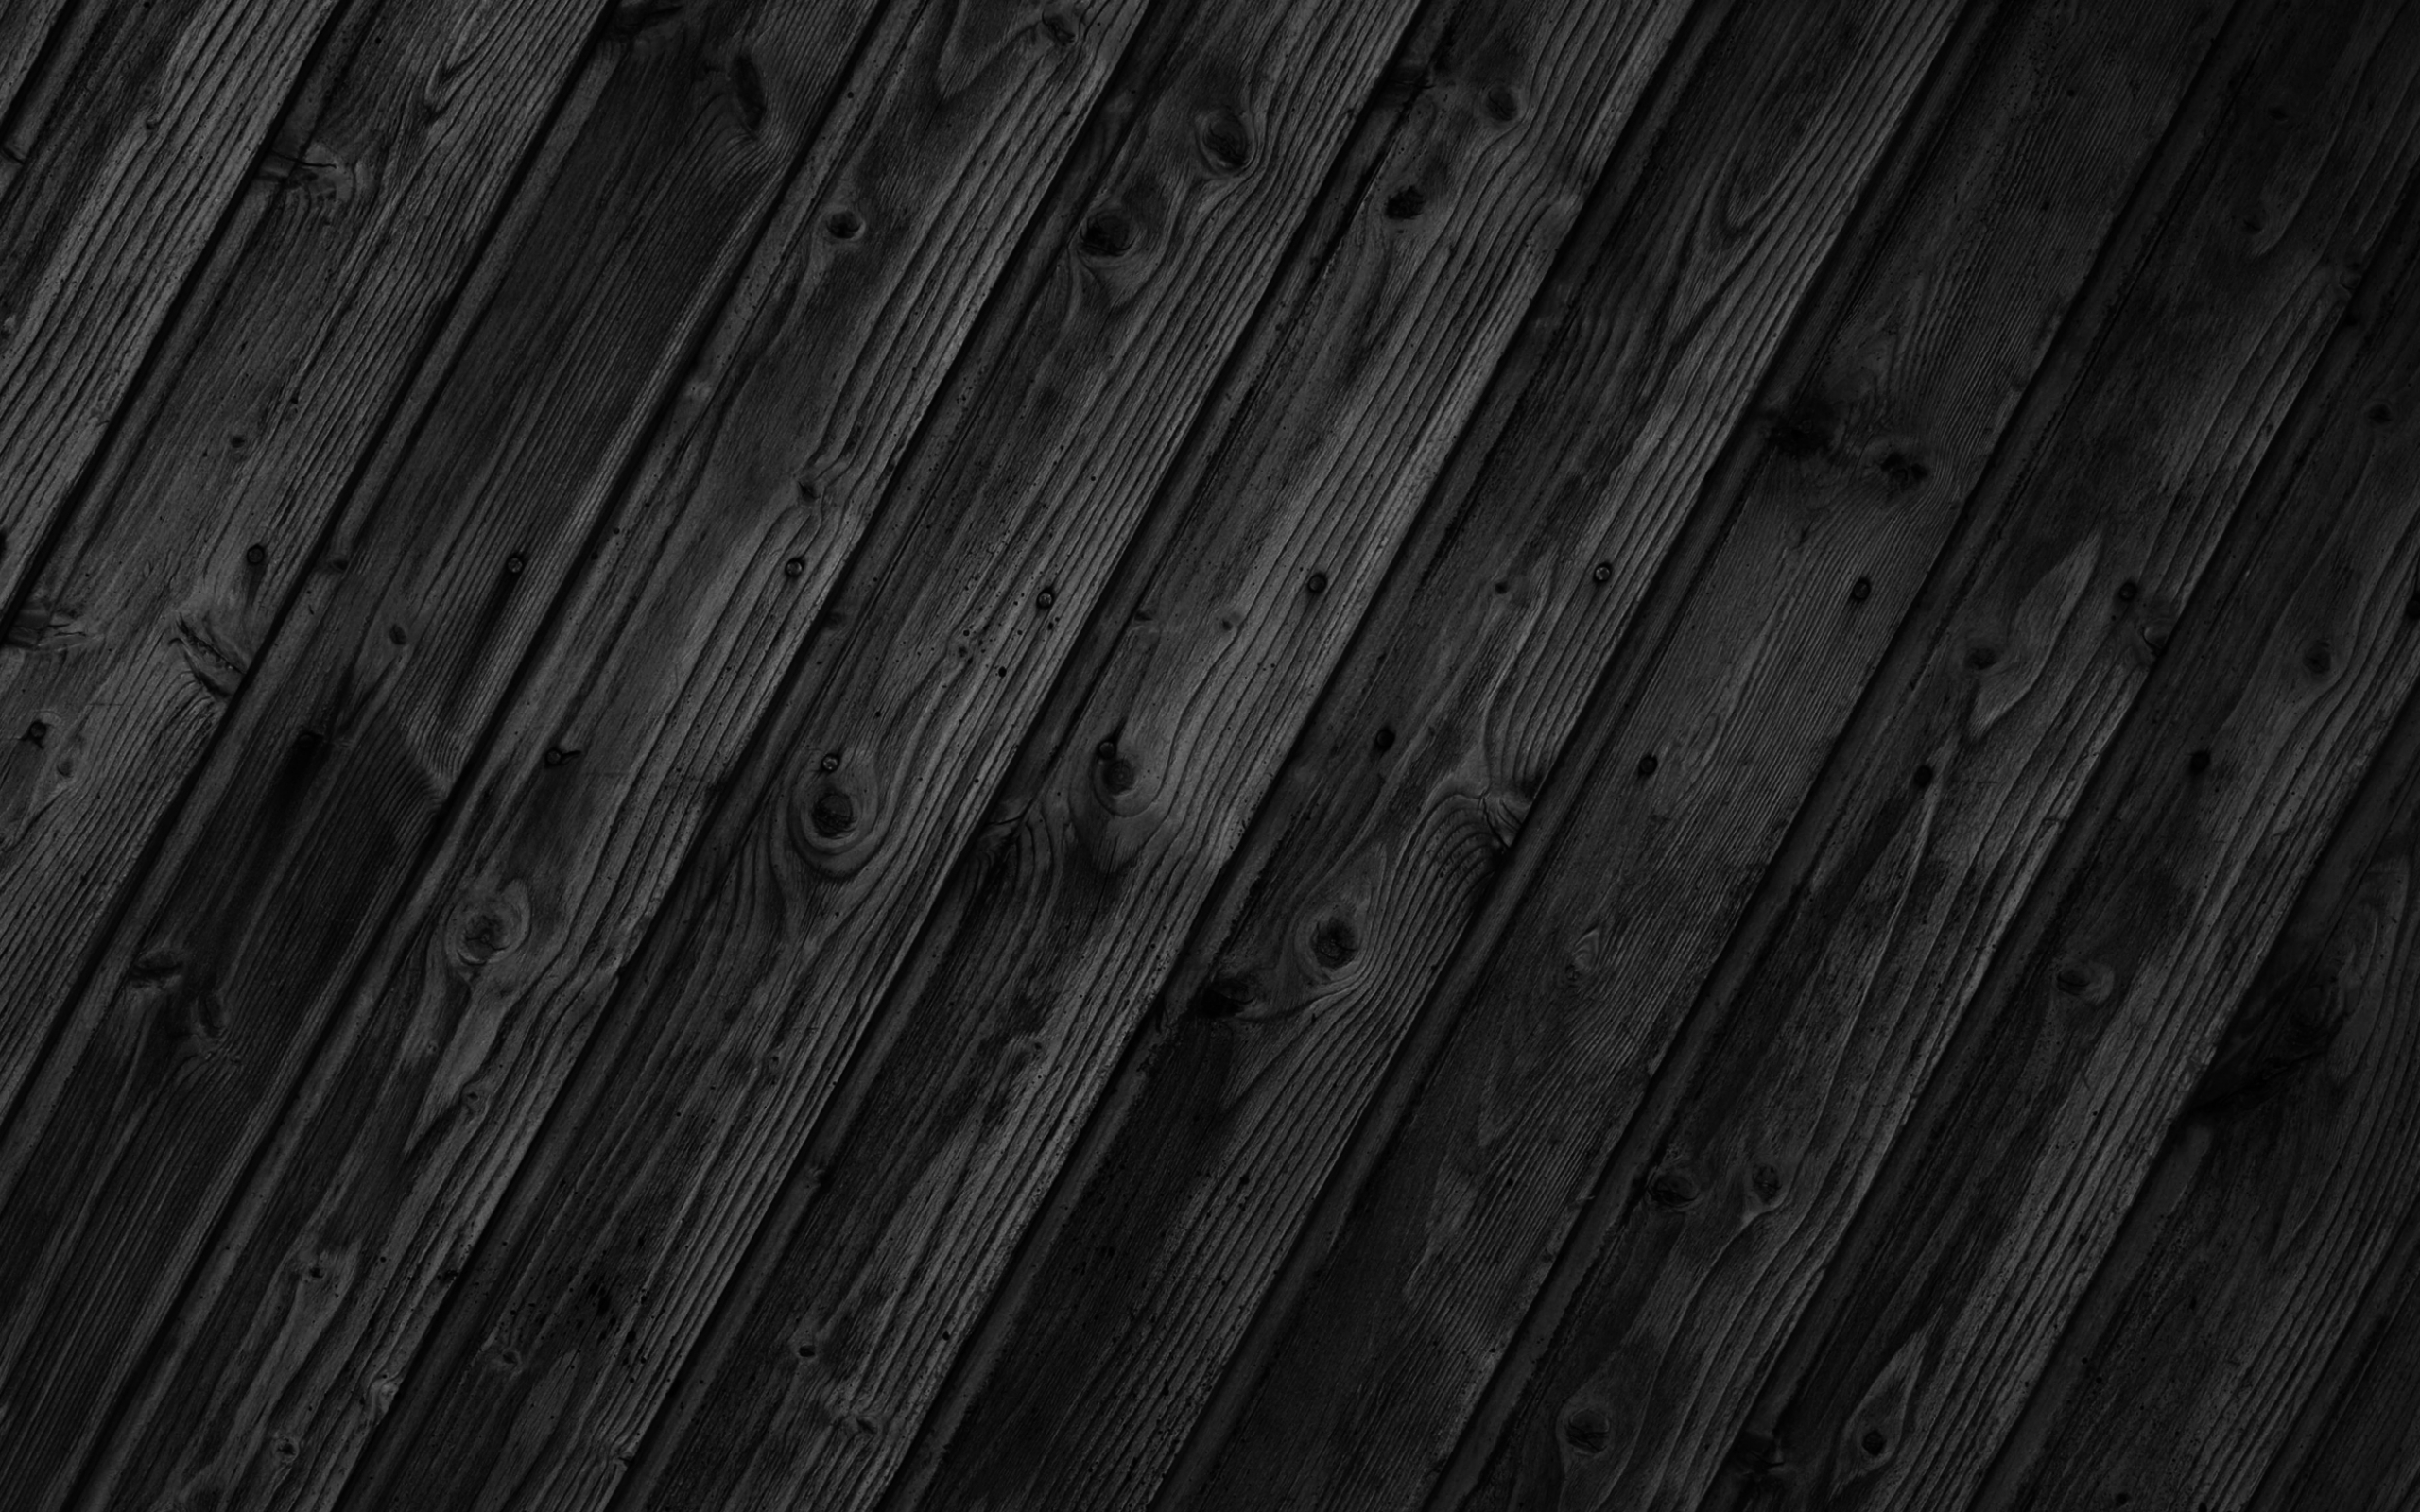 black wood wallpaper 41392